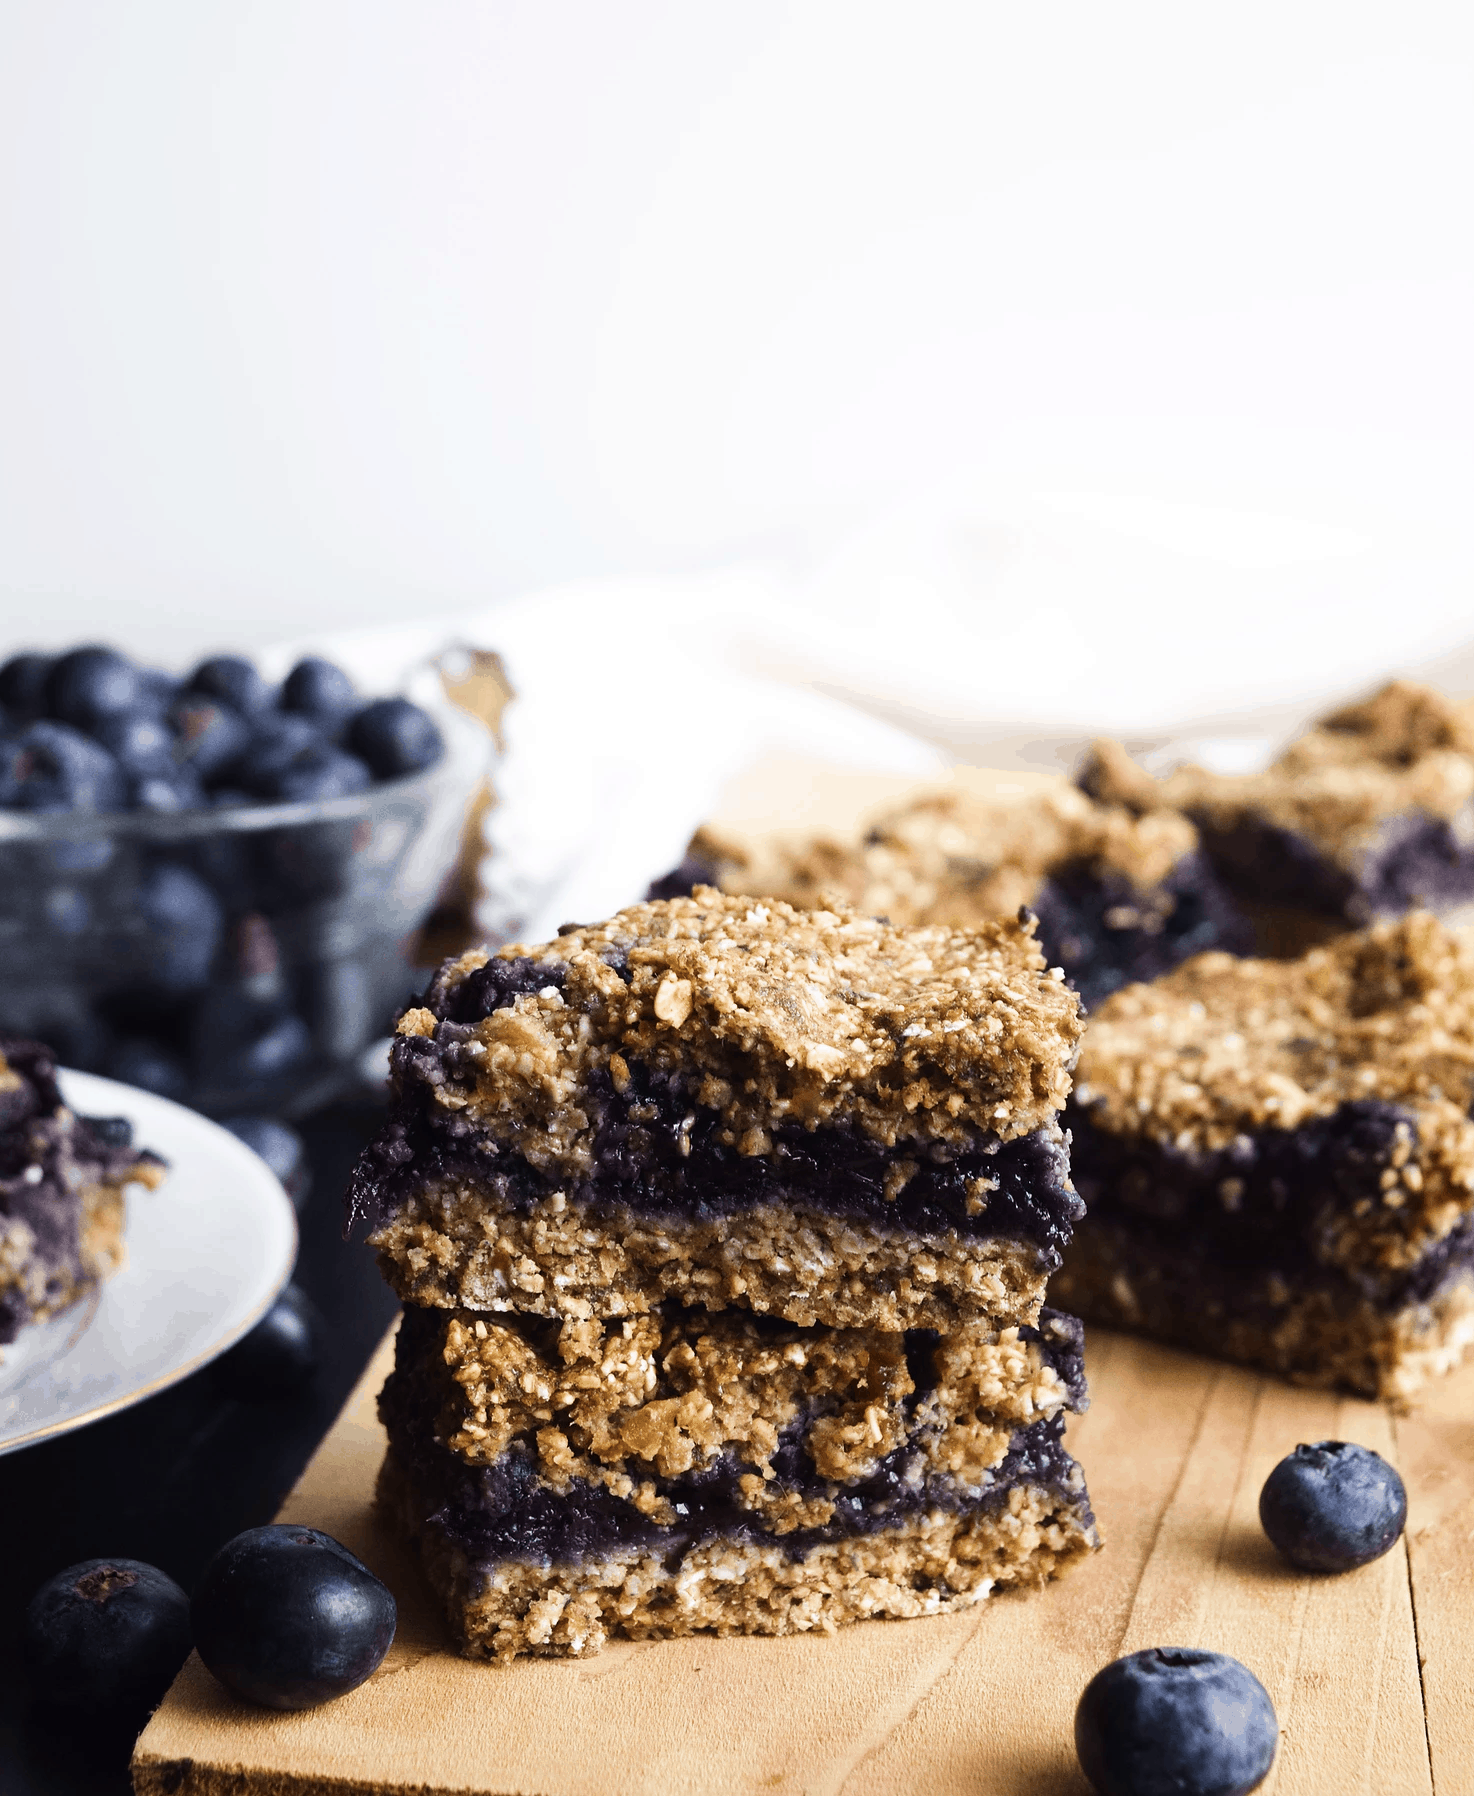 blueberry crumble bars on table.